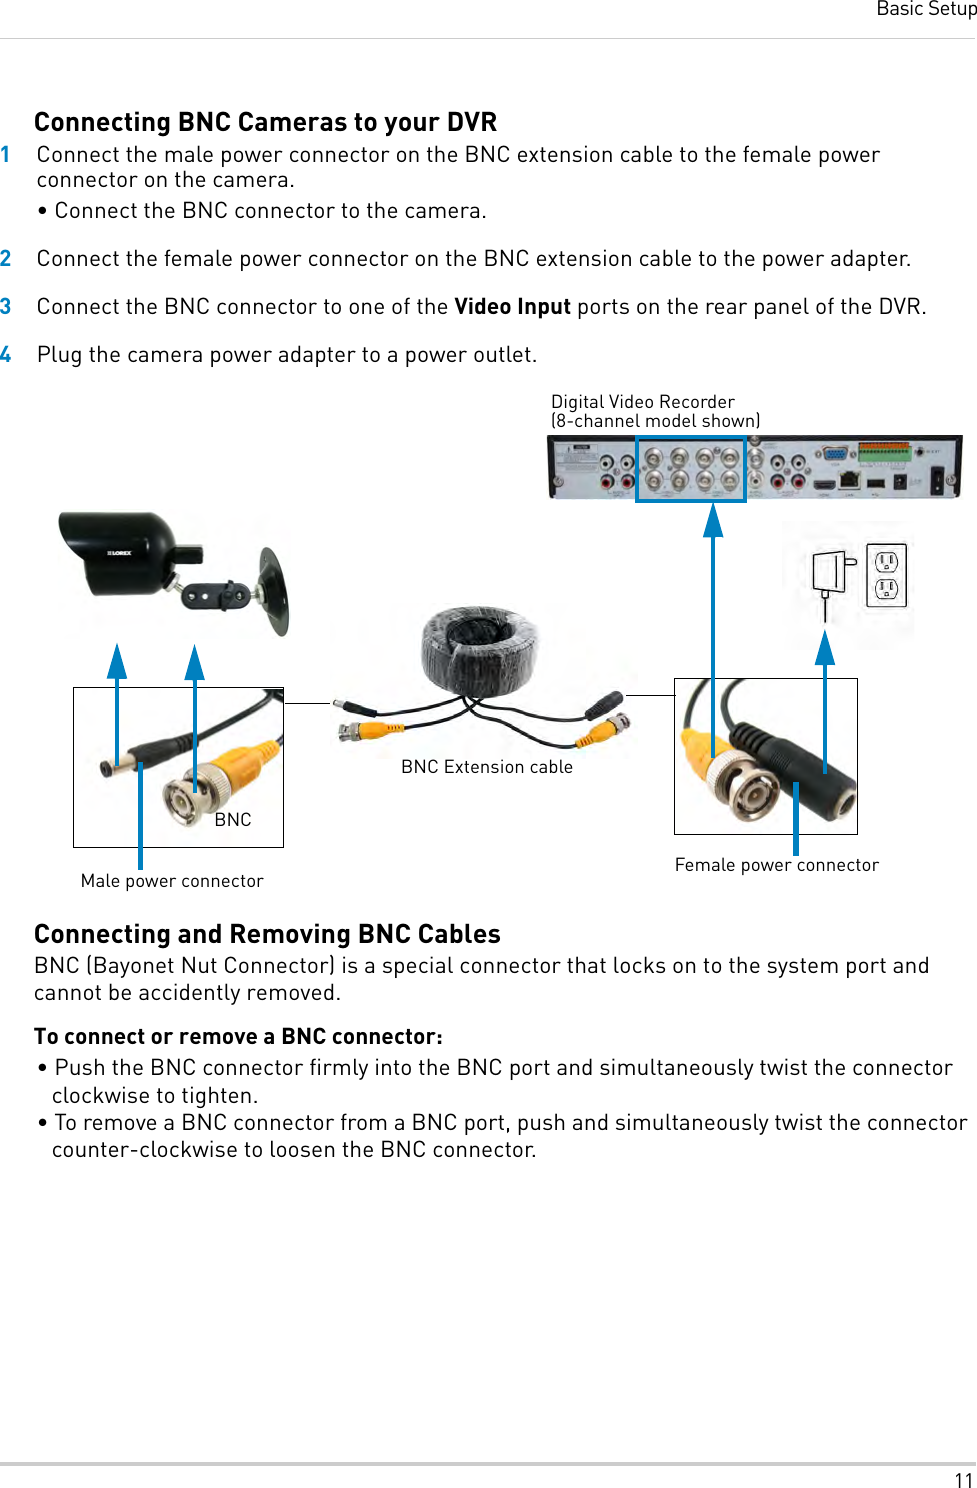 Connect Cctv Camera With Bnc Cable To Super User 2468785 Connector Wiring Diagram Lorex Curity Dodge Caliber